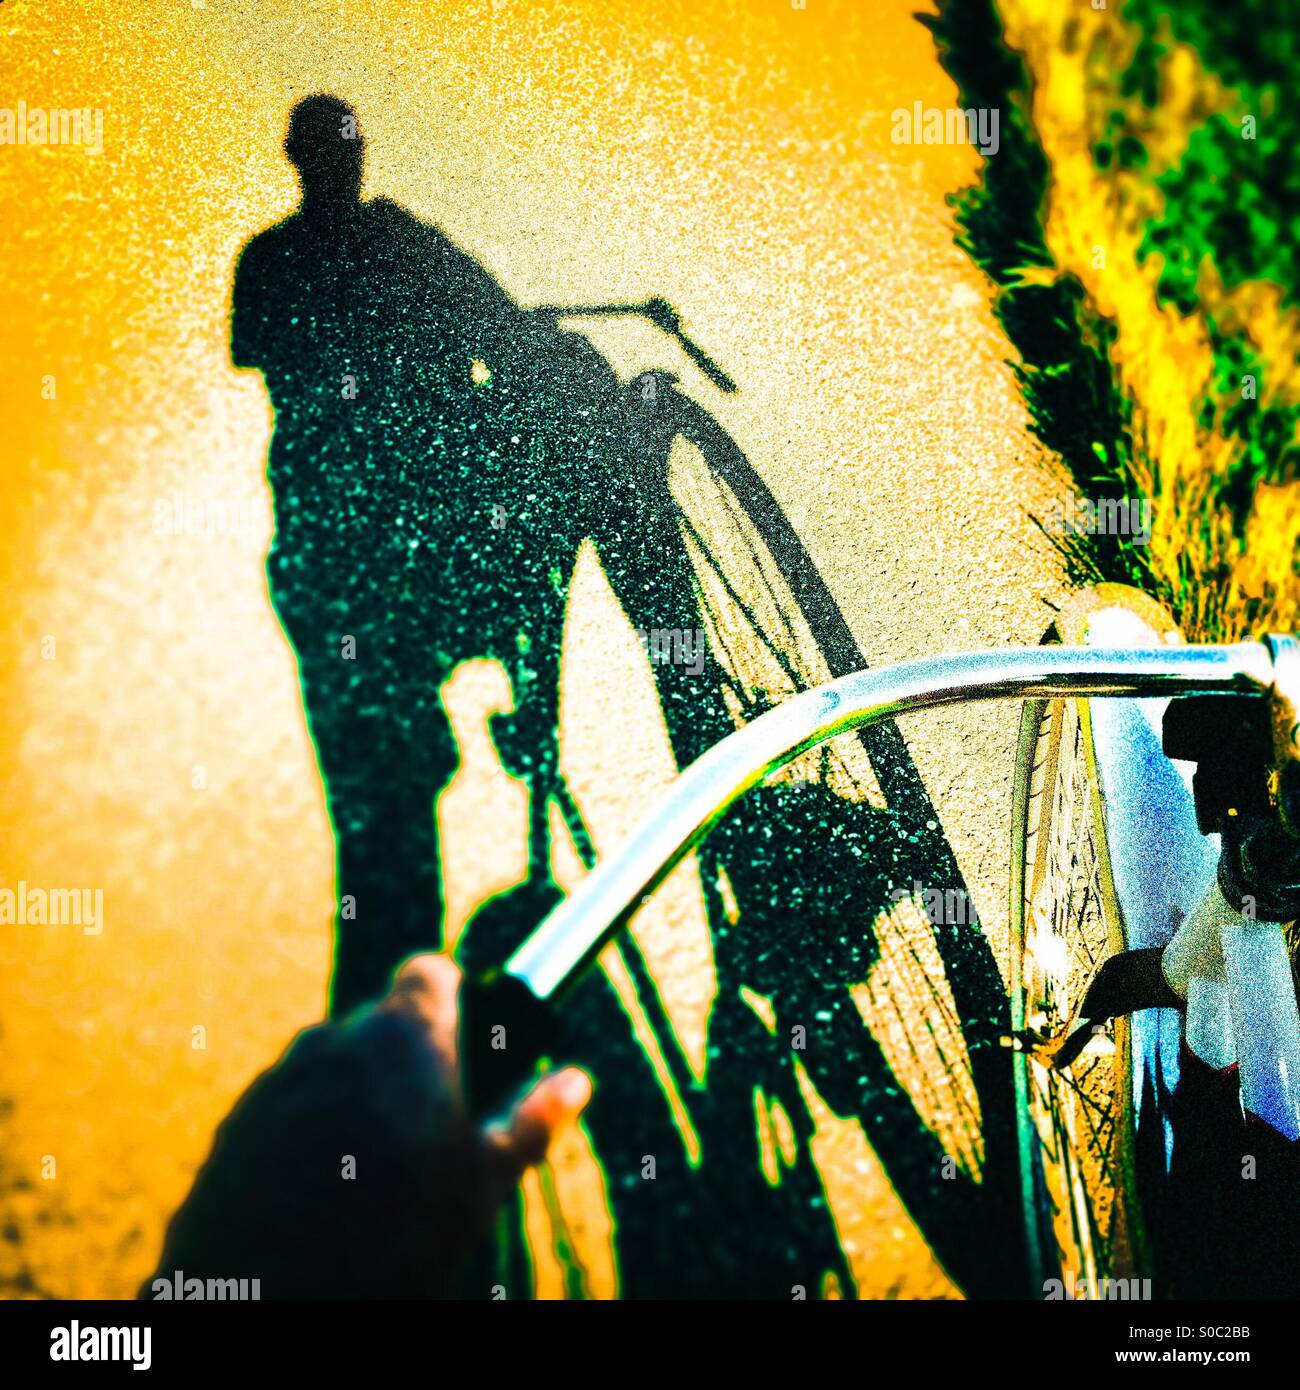 A shadow of a bike rider on a bike path. - Stock Image